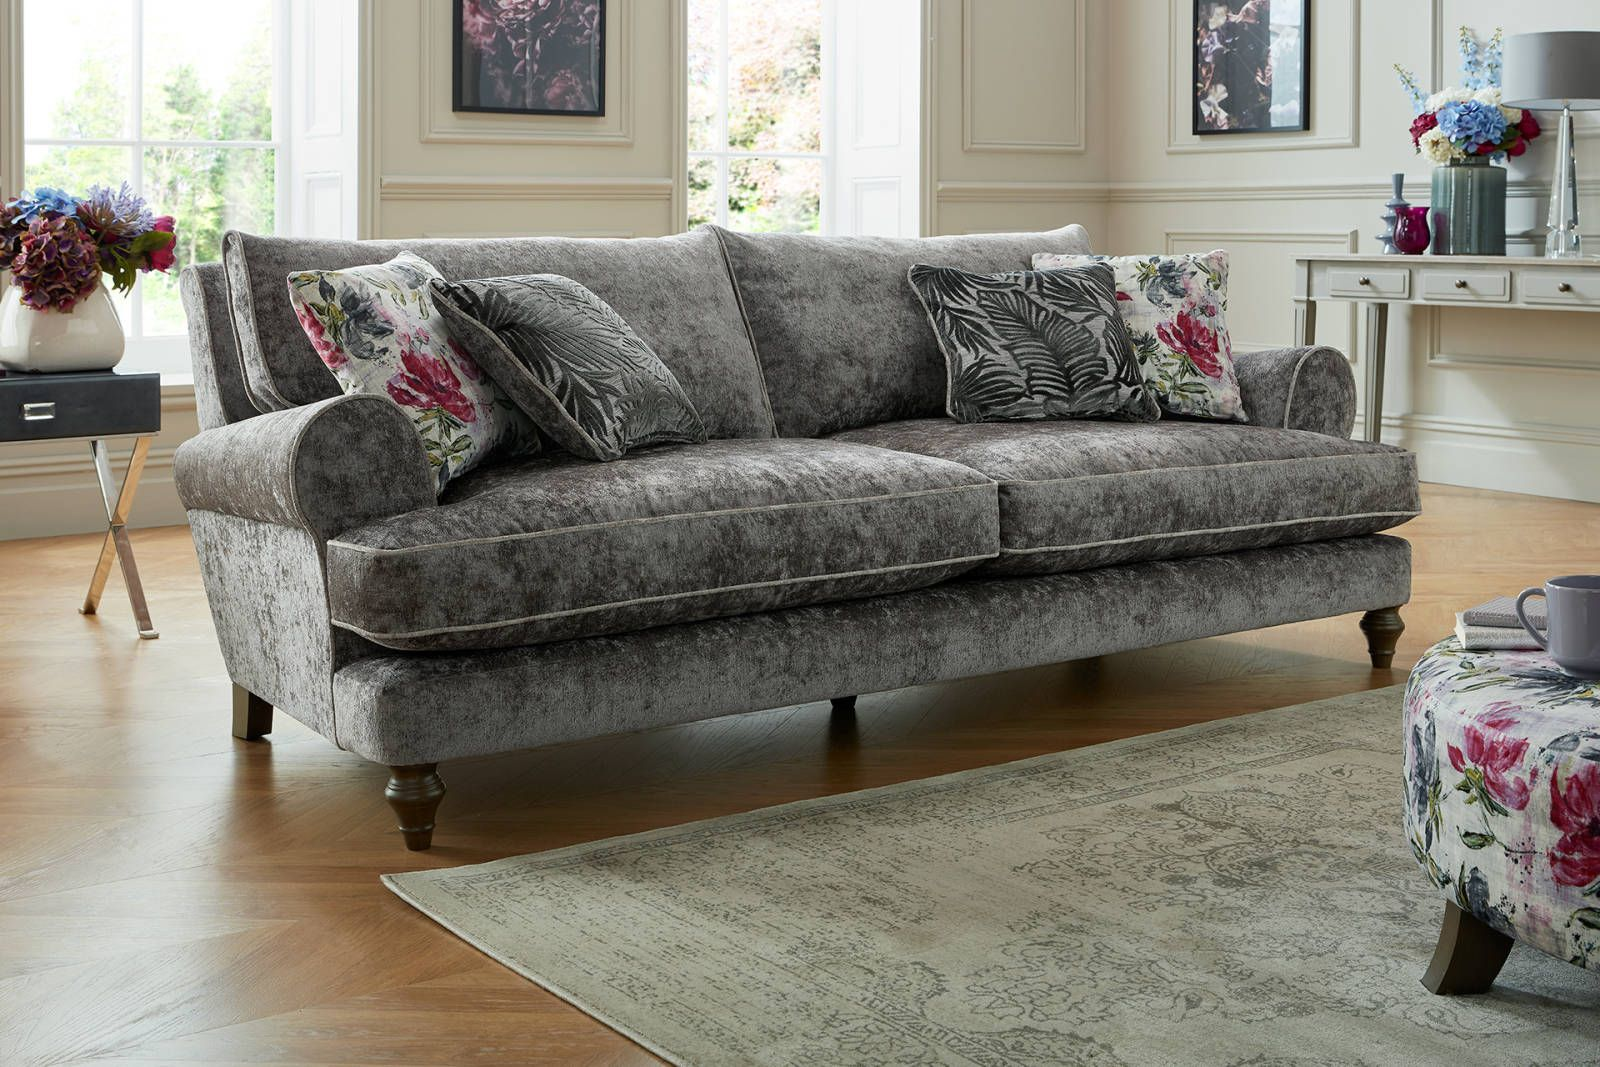 Tremendous Maya Sofology In 2019 Sofa Fabric Sofa Large Sofa Gmtry Best Dining Table And Chair Ideas Images Gmtryco